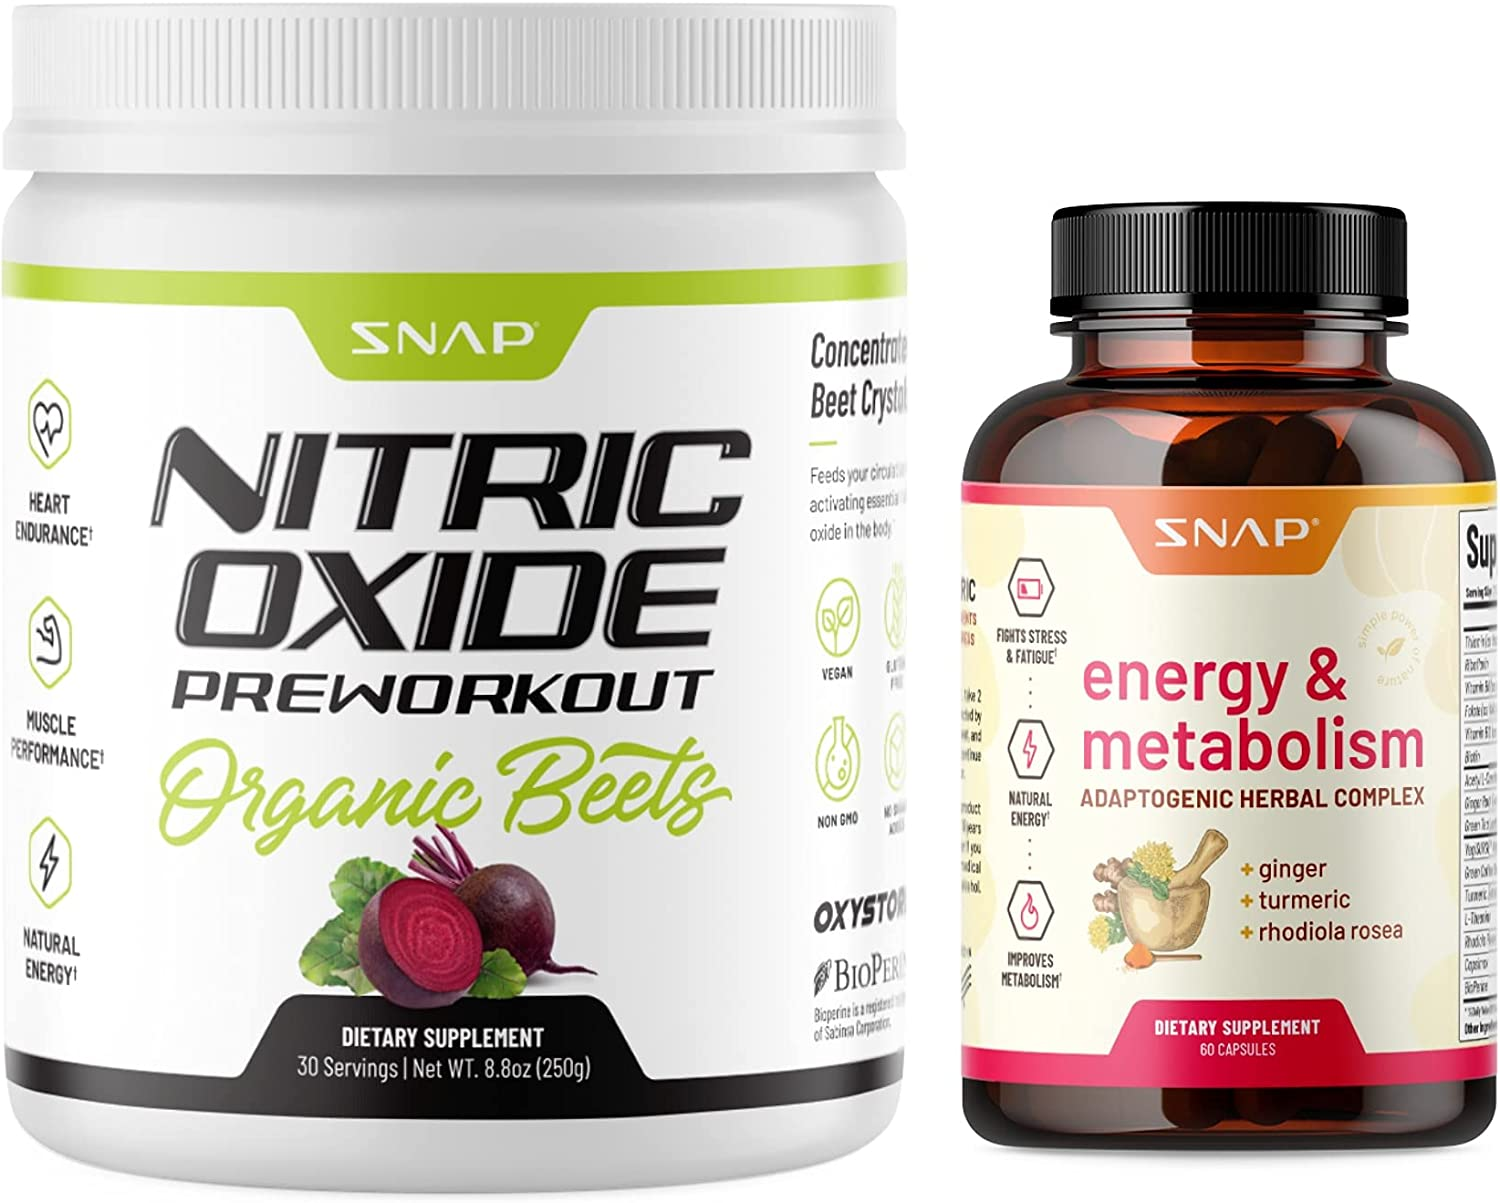 Pre-Workout Beets Sale Max 75% OFF price + Energy Metabolism 2 Products